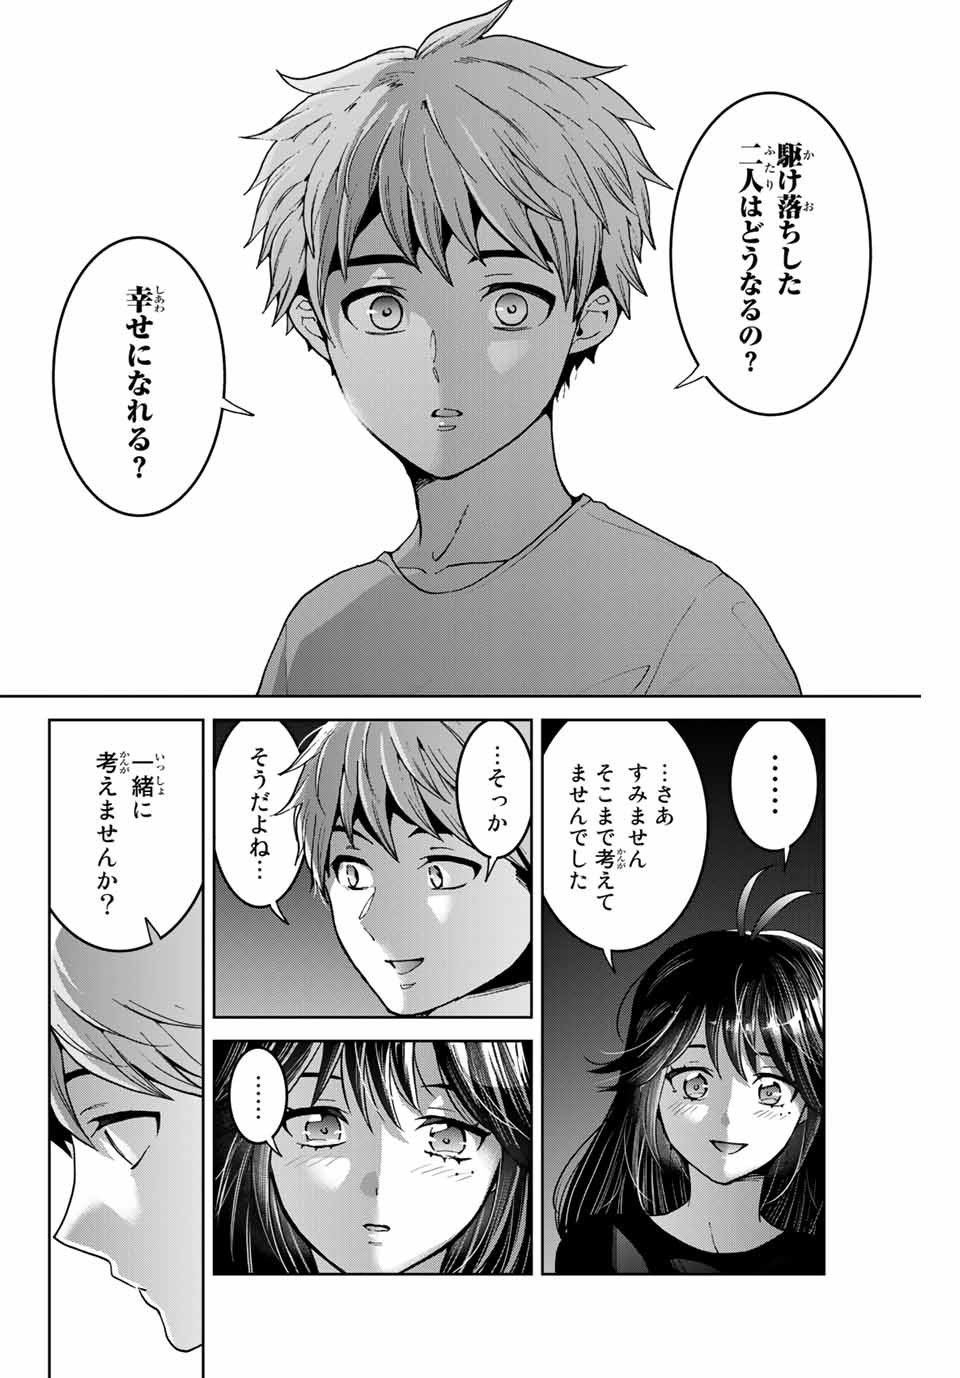 Manga Raw Bokutachi wa Hanshoku wo Yameta Chapter 19